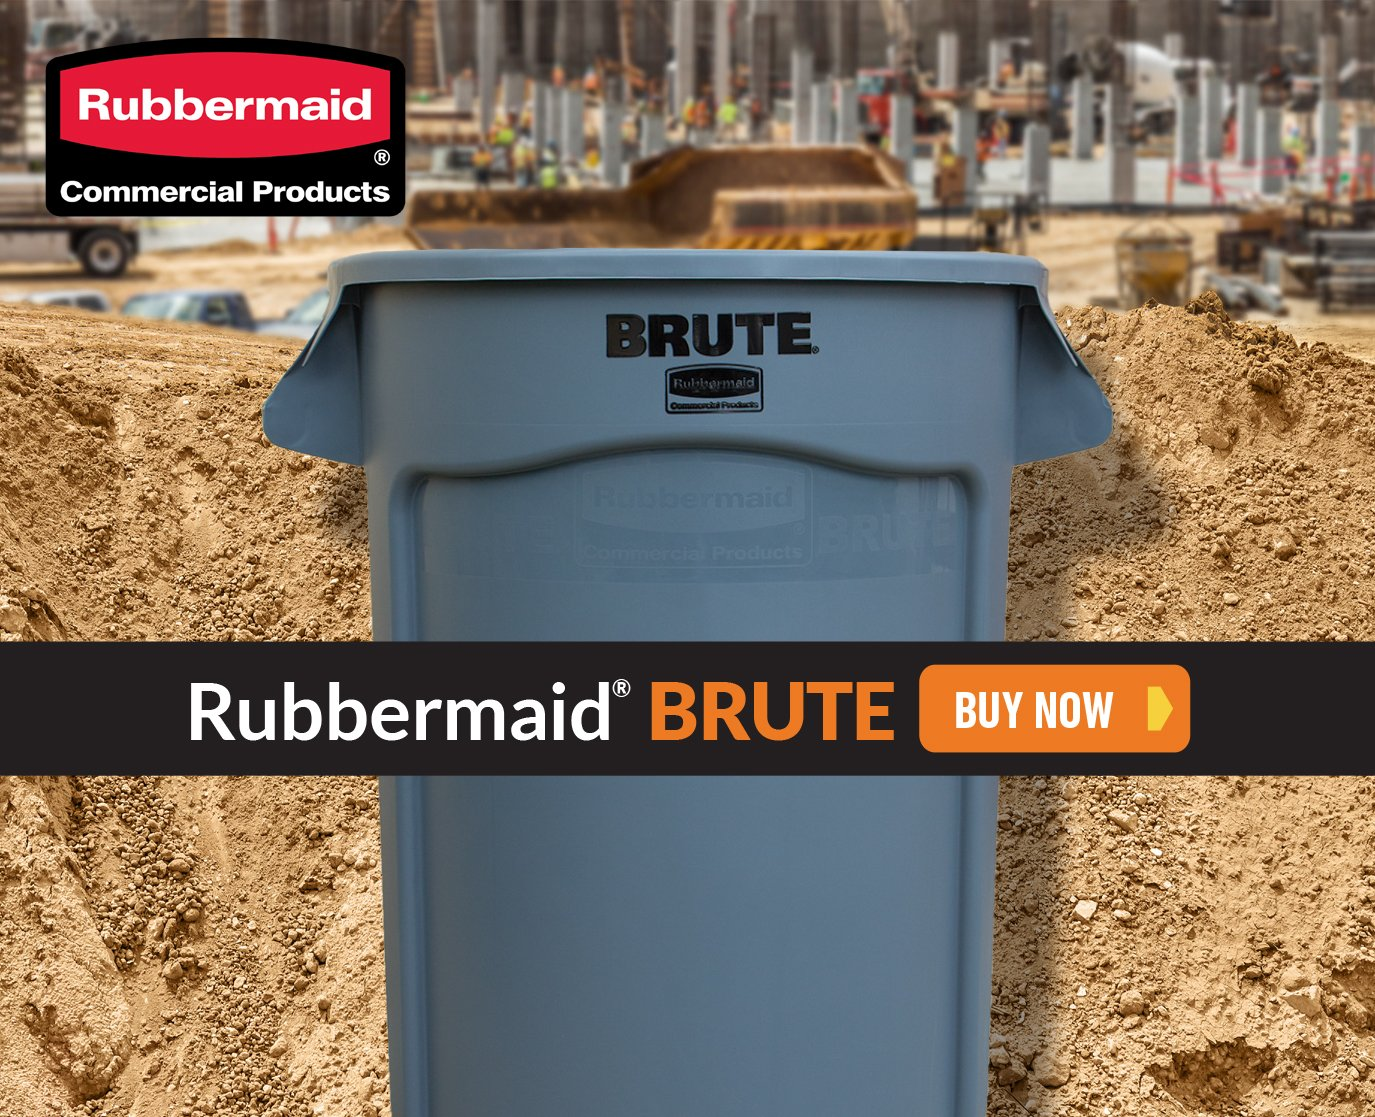 Rubbermaid BRUTE products